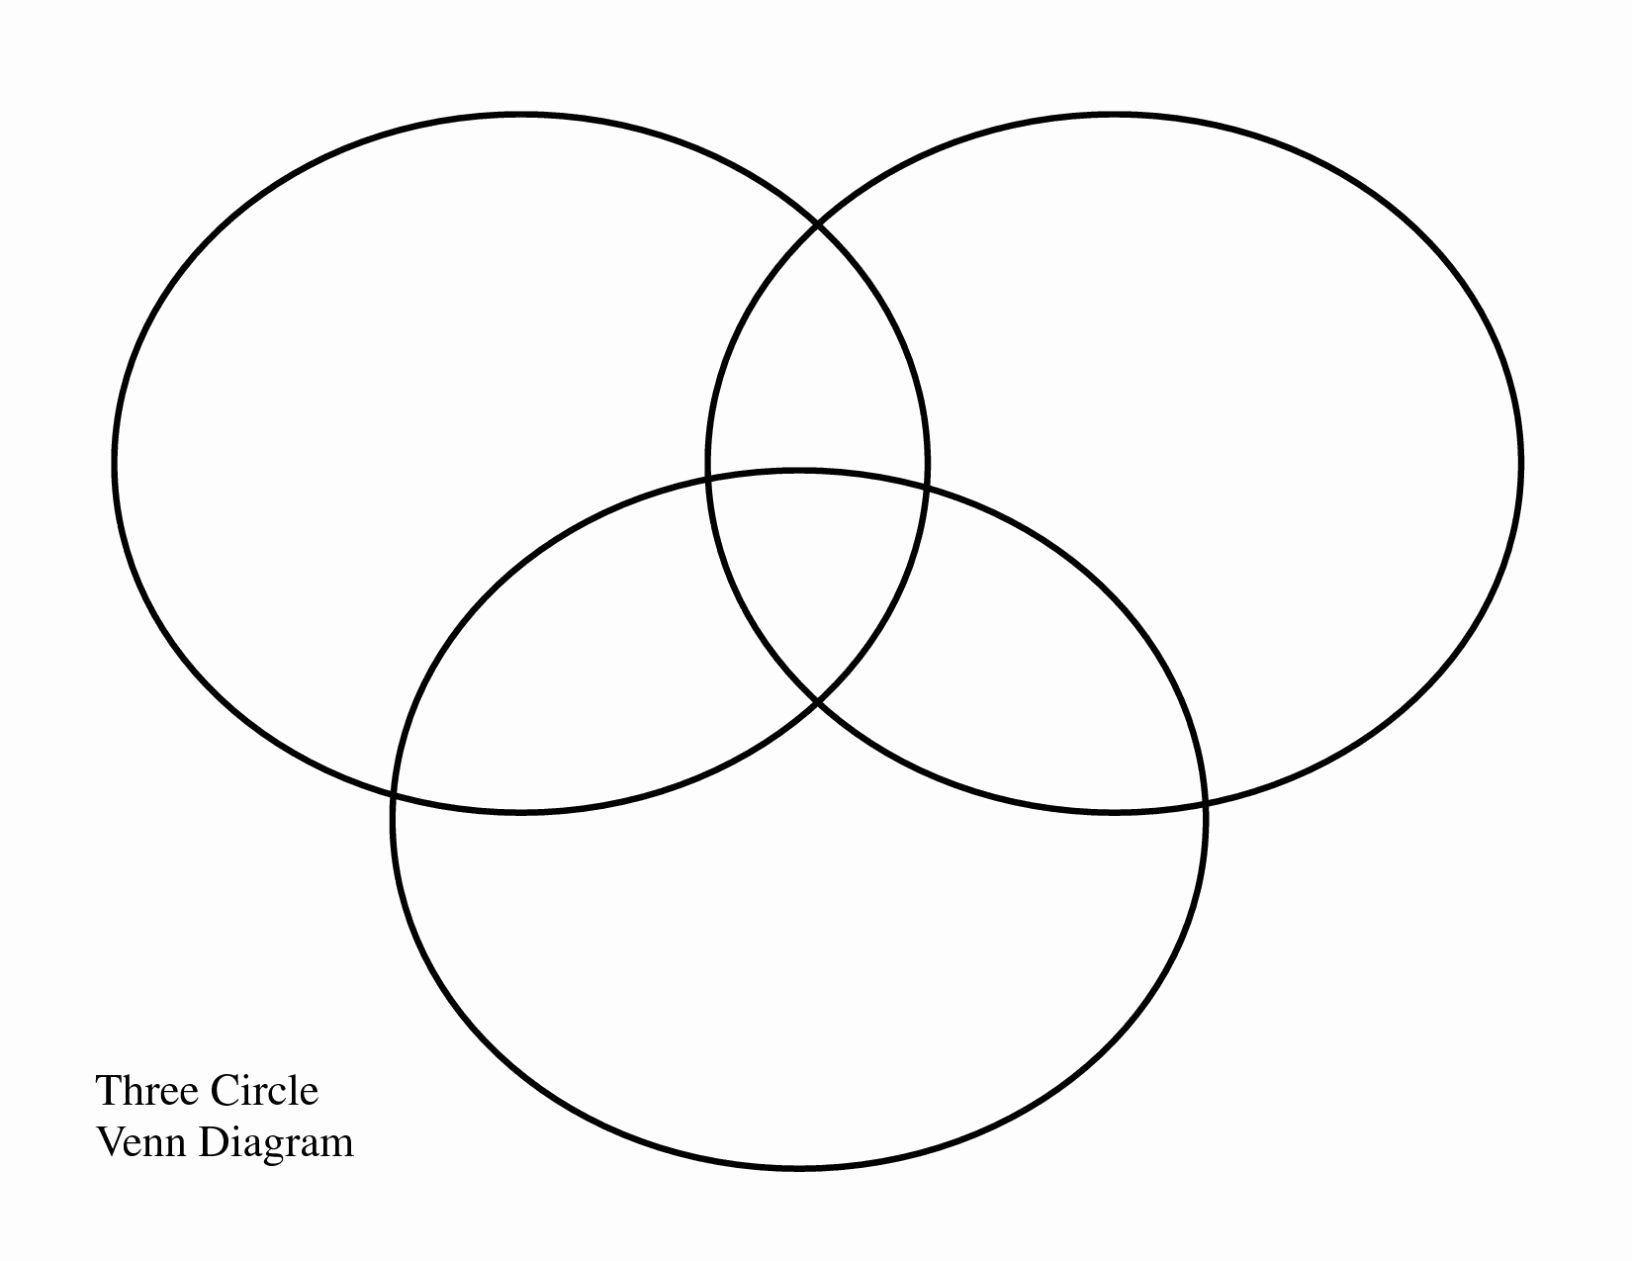 Venn Diagram Template Doc Fresh Printable Blank Venn